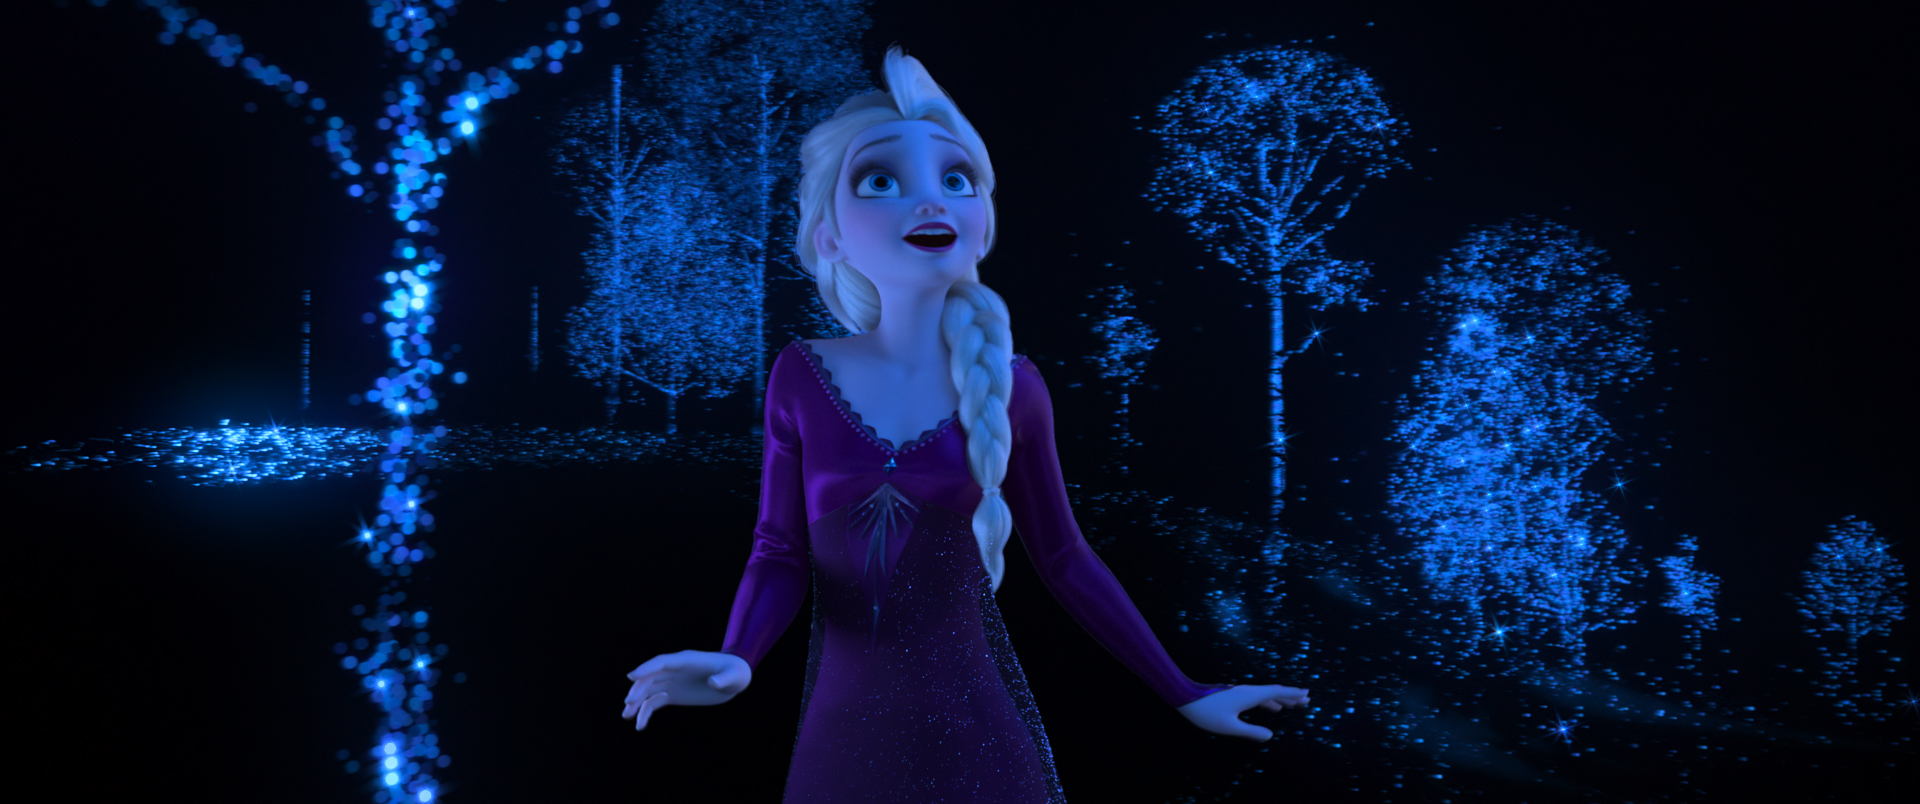 "INTO THE UNKNOWN – In ""Frozen 2,"" Elsa feels that she's being beckoned by a voice from far away, a calling she can't ignore showcased in the original song ""Into the Unknown."" She learns that answers await her—but she must venture far from home. Featuring Idina Menzel as the voice of Elsa, Walt Disney Animation Studios' ""Frozen 2"" opens in U.S. theaters on Nov. 22, 2019. © 2019 Disney. All Rights Reserved."